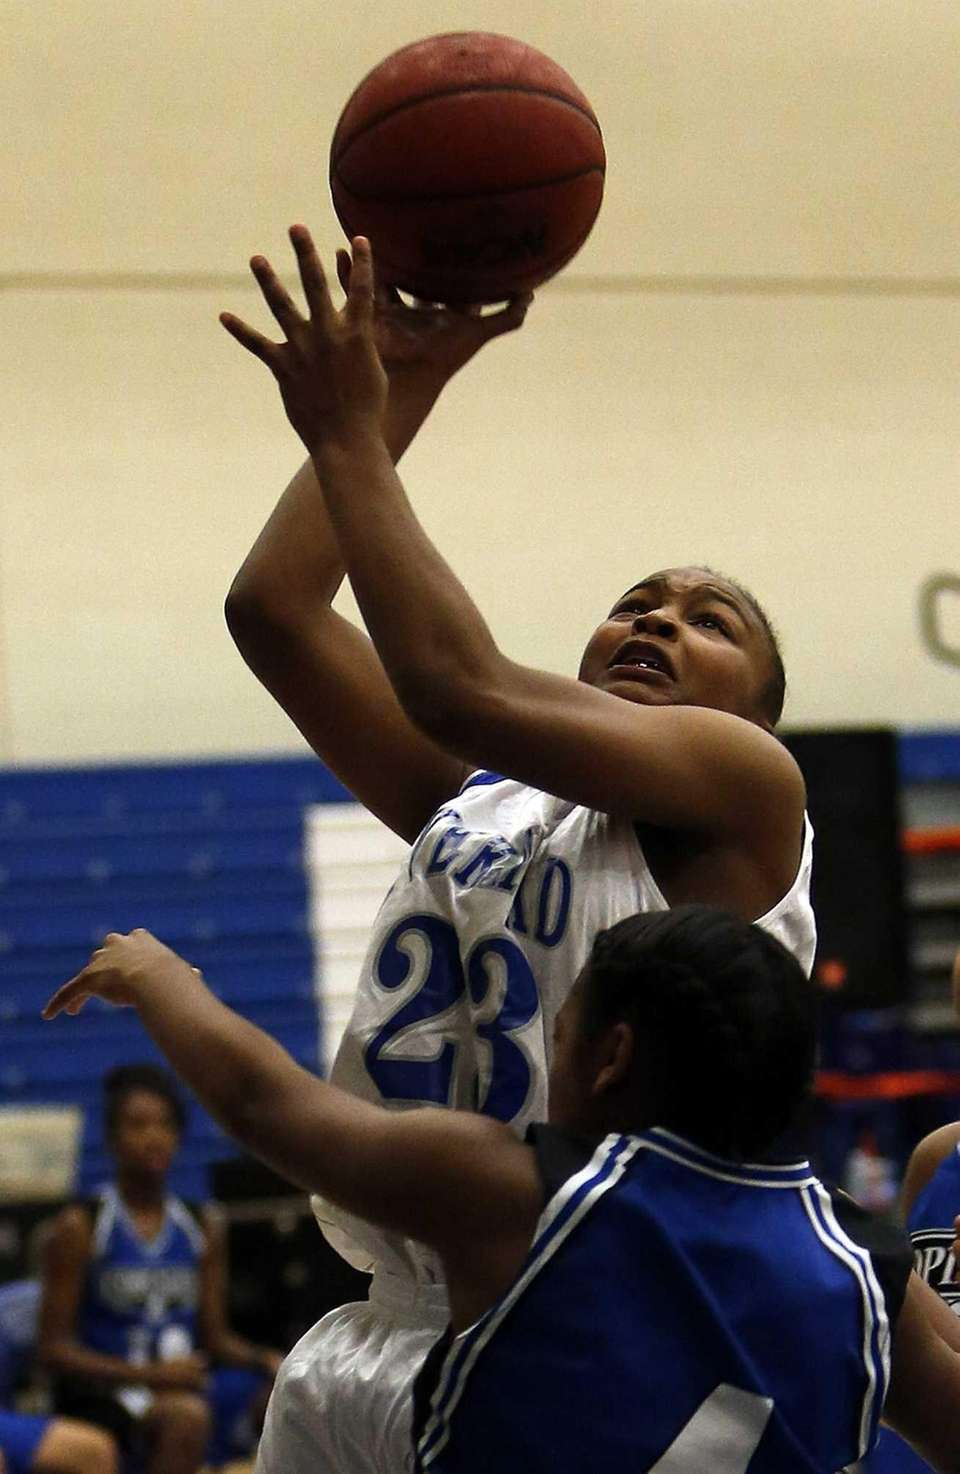 Riverhead's Shanice Allen goes for the layup over